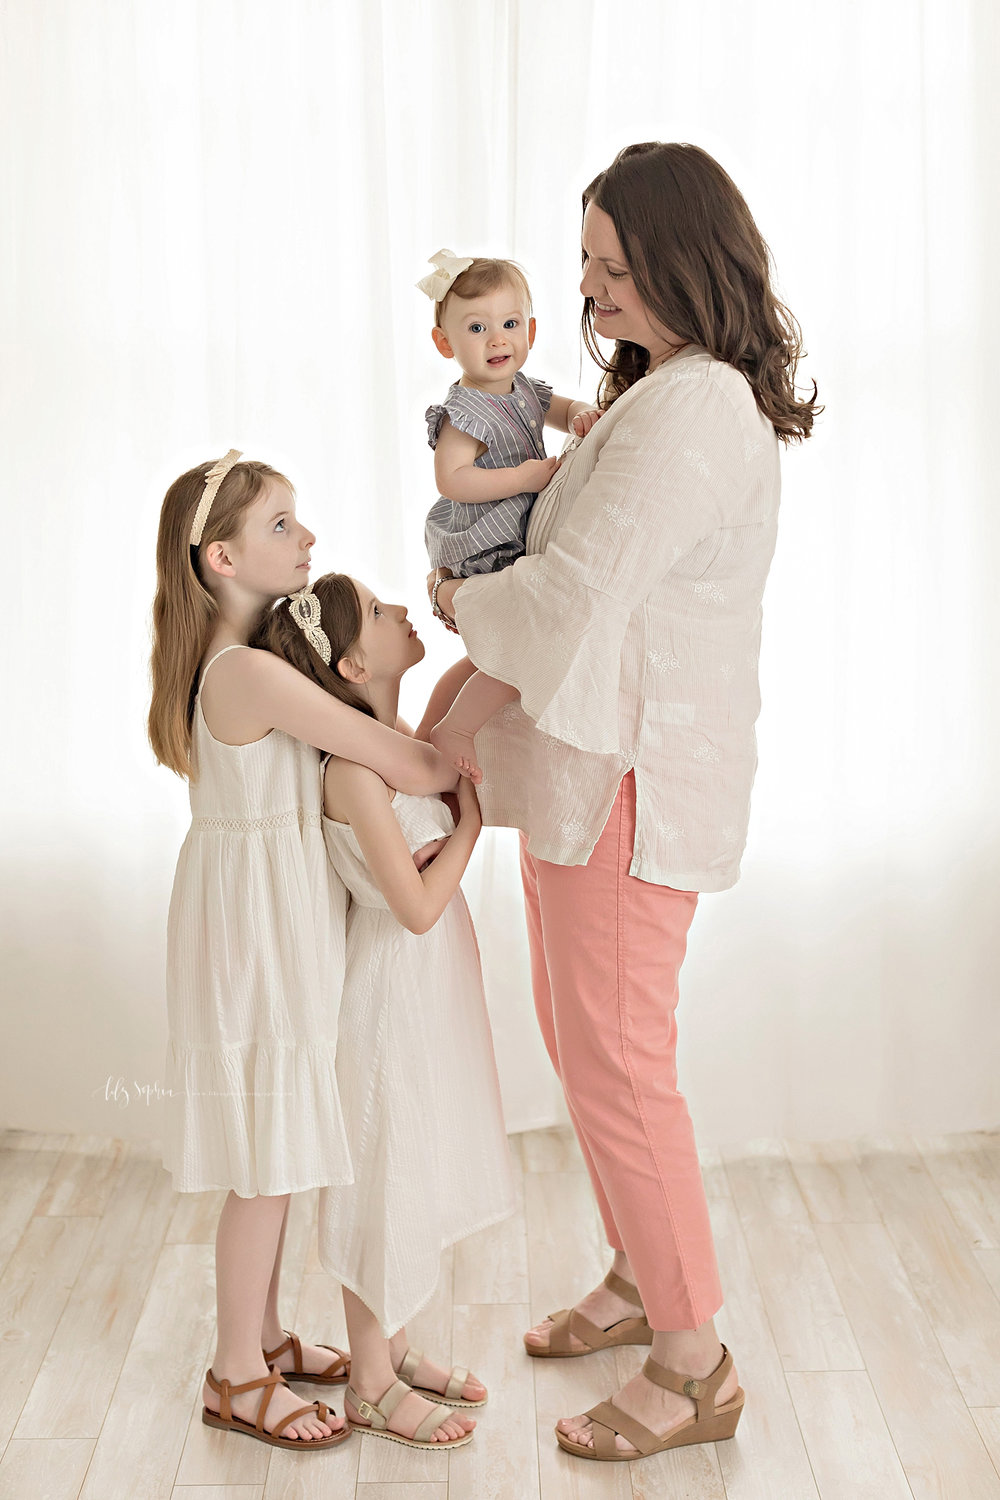 Image of a mother, wearing a long sleeved, cream dress, holding her baby daughter in her arms white her two older daughters look at her and she smiles down at them.